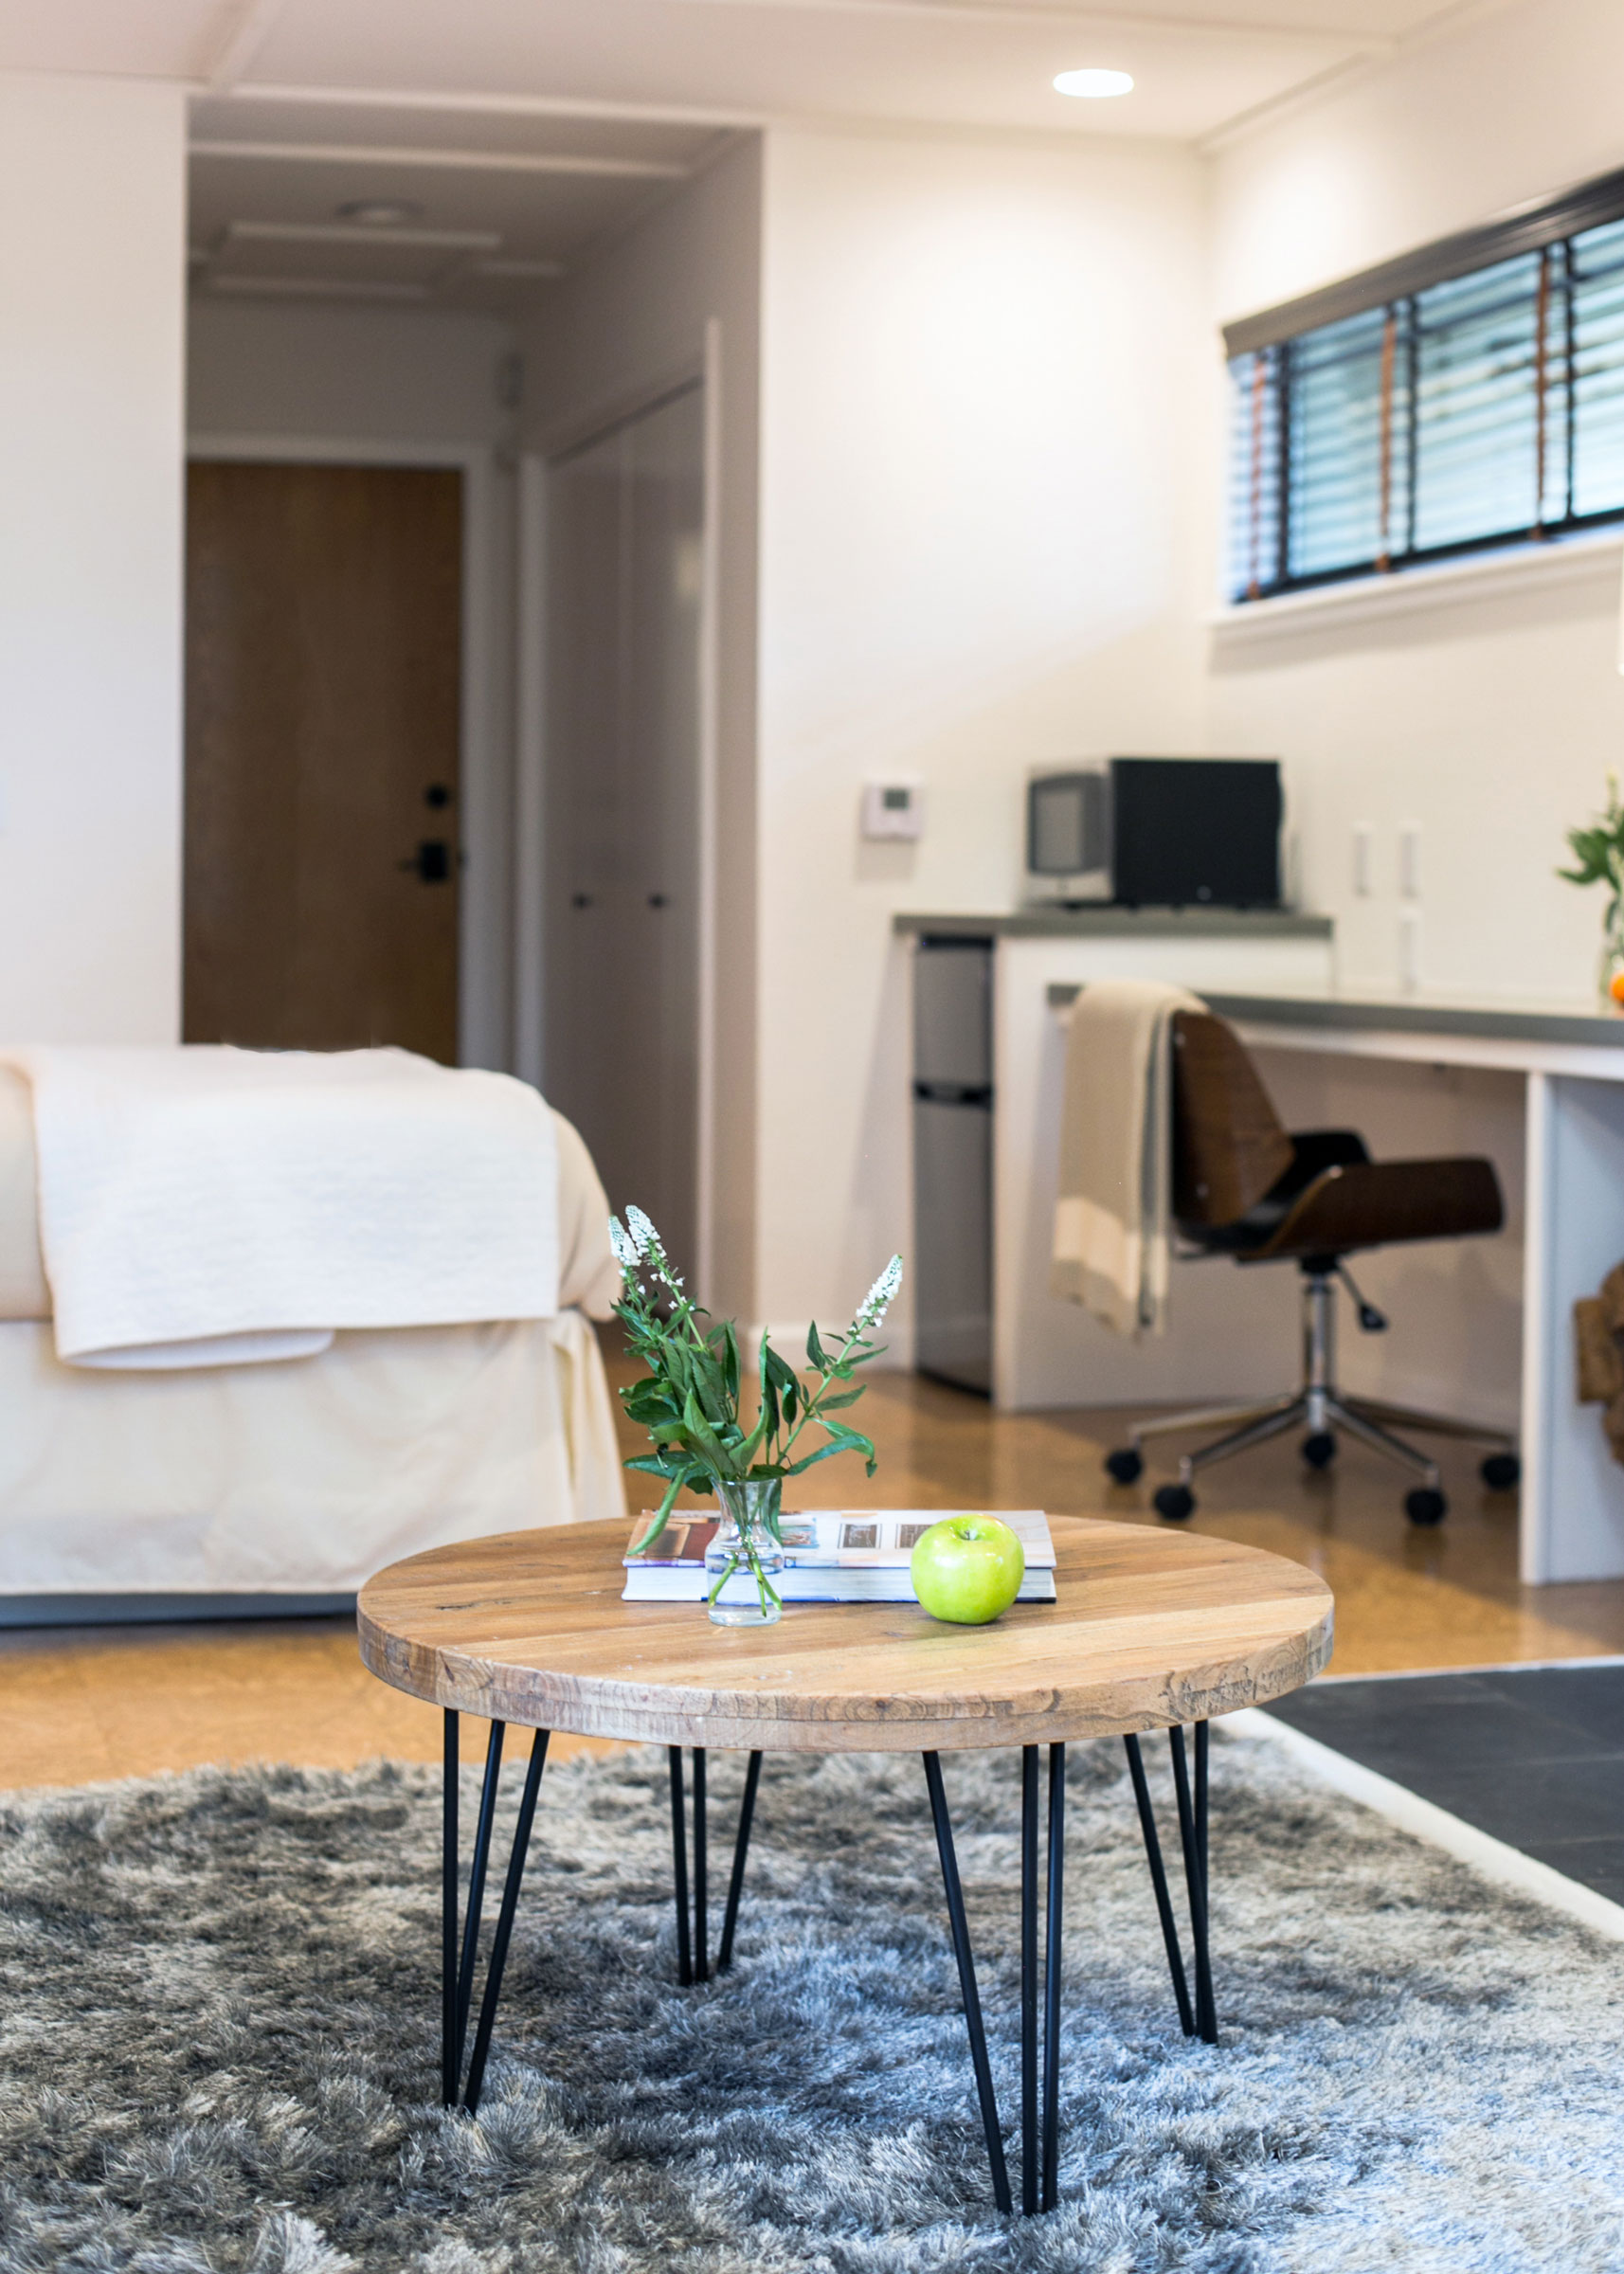 A modern coffee table sits on a plush grey rug in room 203 in the Lodge at Glendeven of Mendocino.